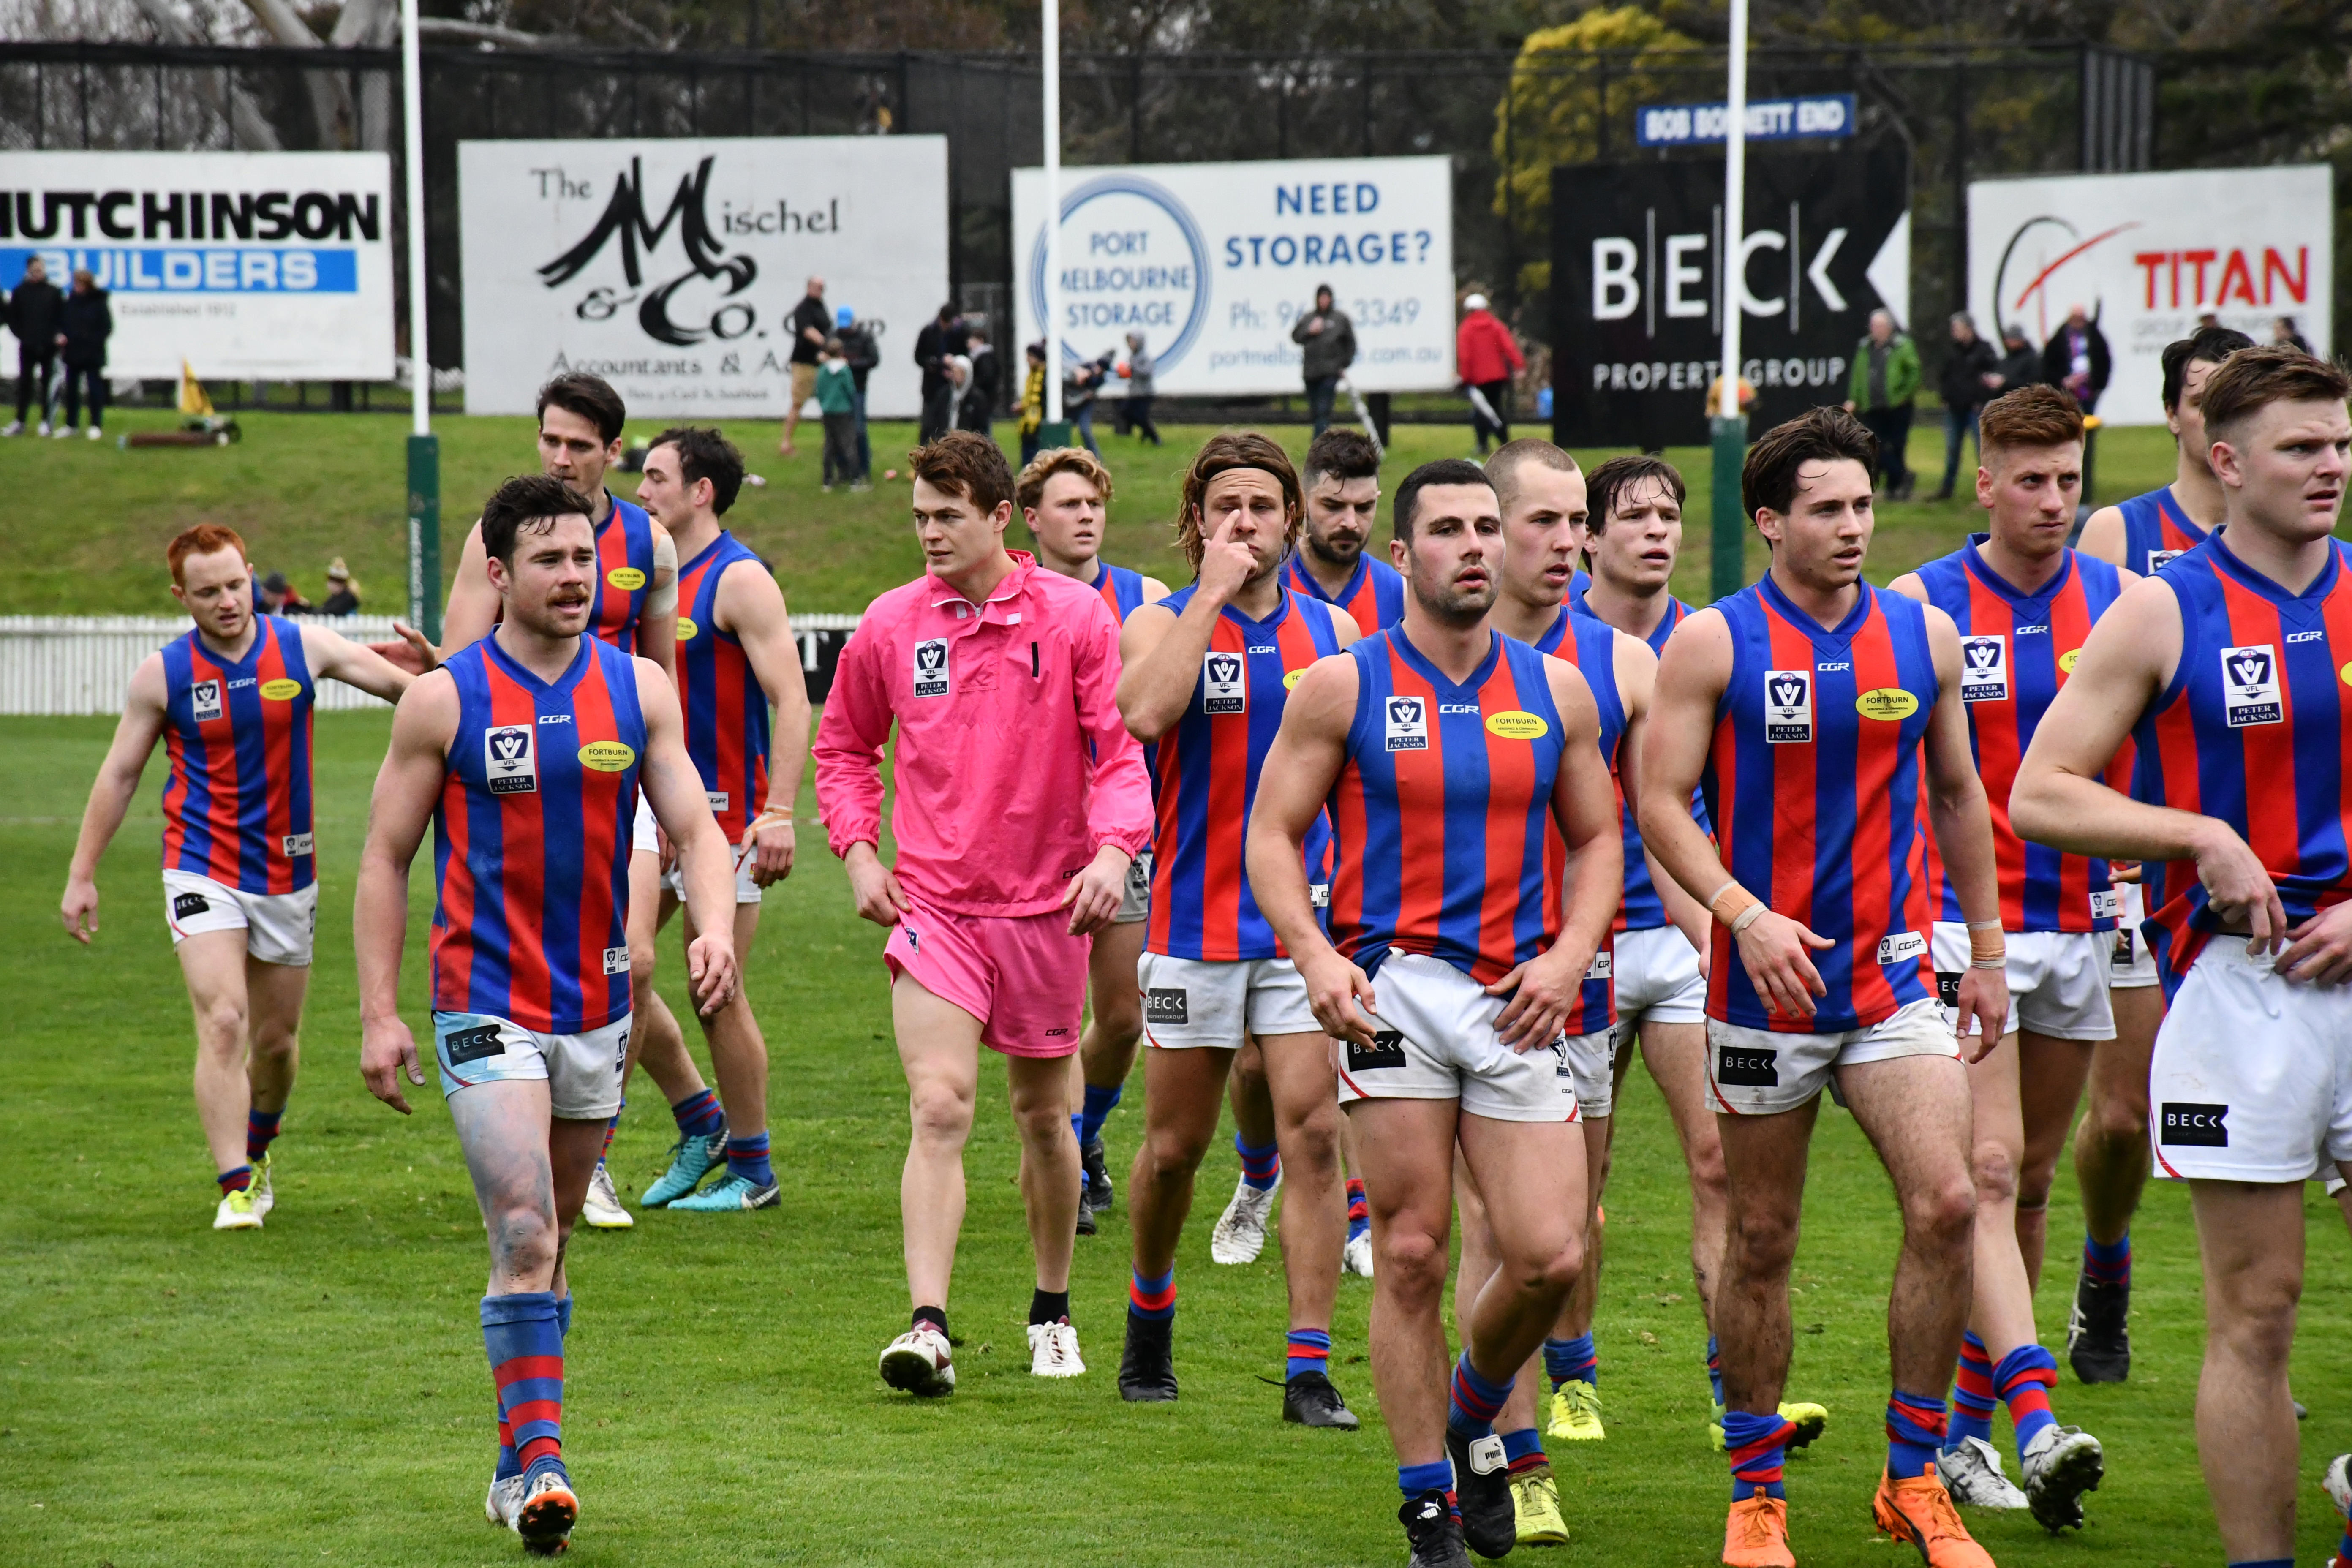 After an 83-point full-time draw, Port Melbourne and Box Hill play in extra time for a position in the finals on 1st September. Port Melbourne were defeated by 13 points and their 2018 season came to an end. Ex-Port player now team runner Josh Tynan consoles players as they walk off the field. (By Sophie Simpson).